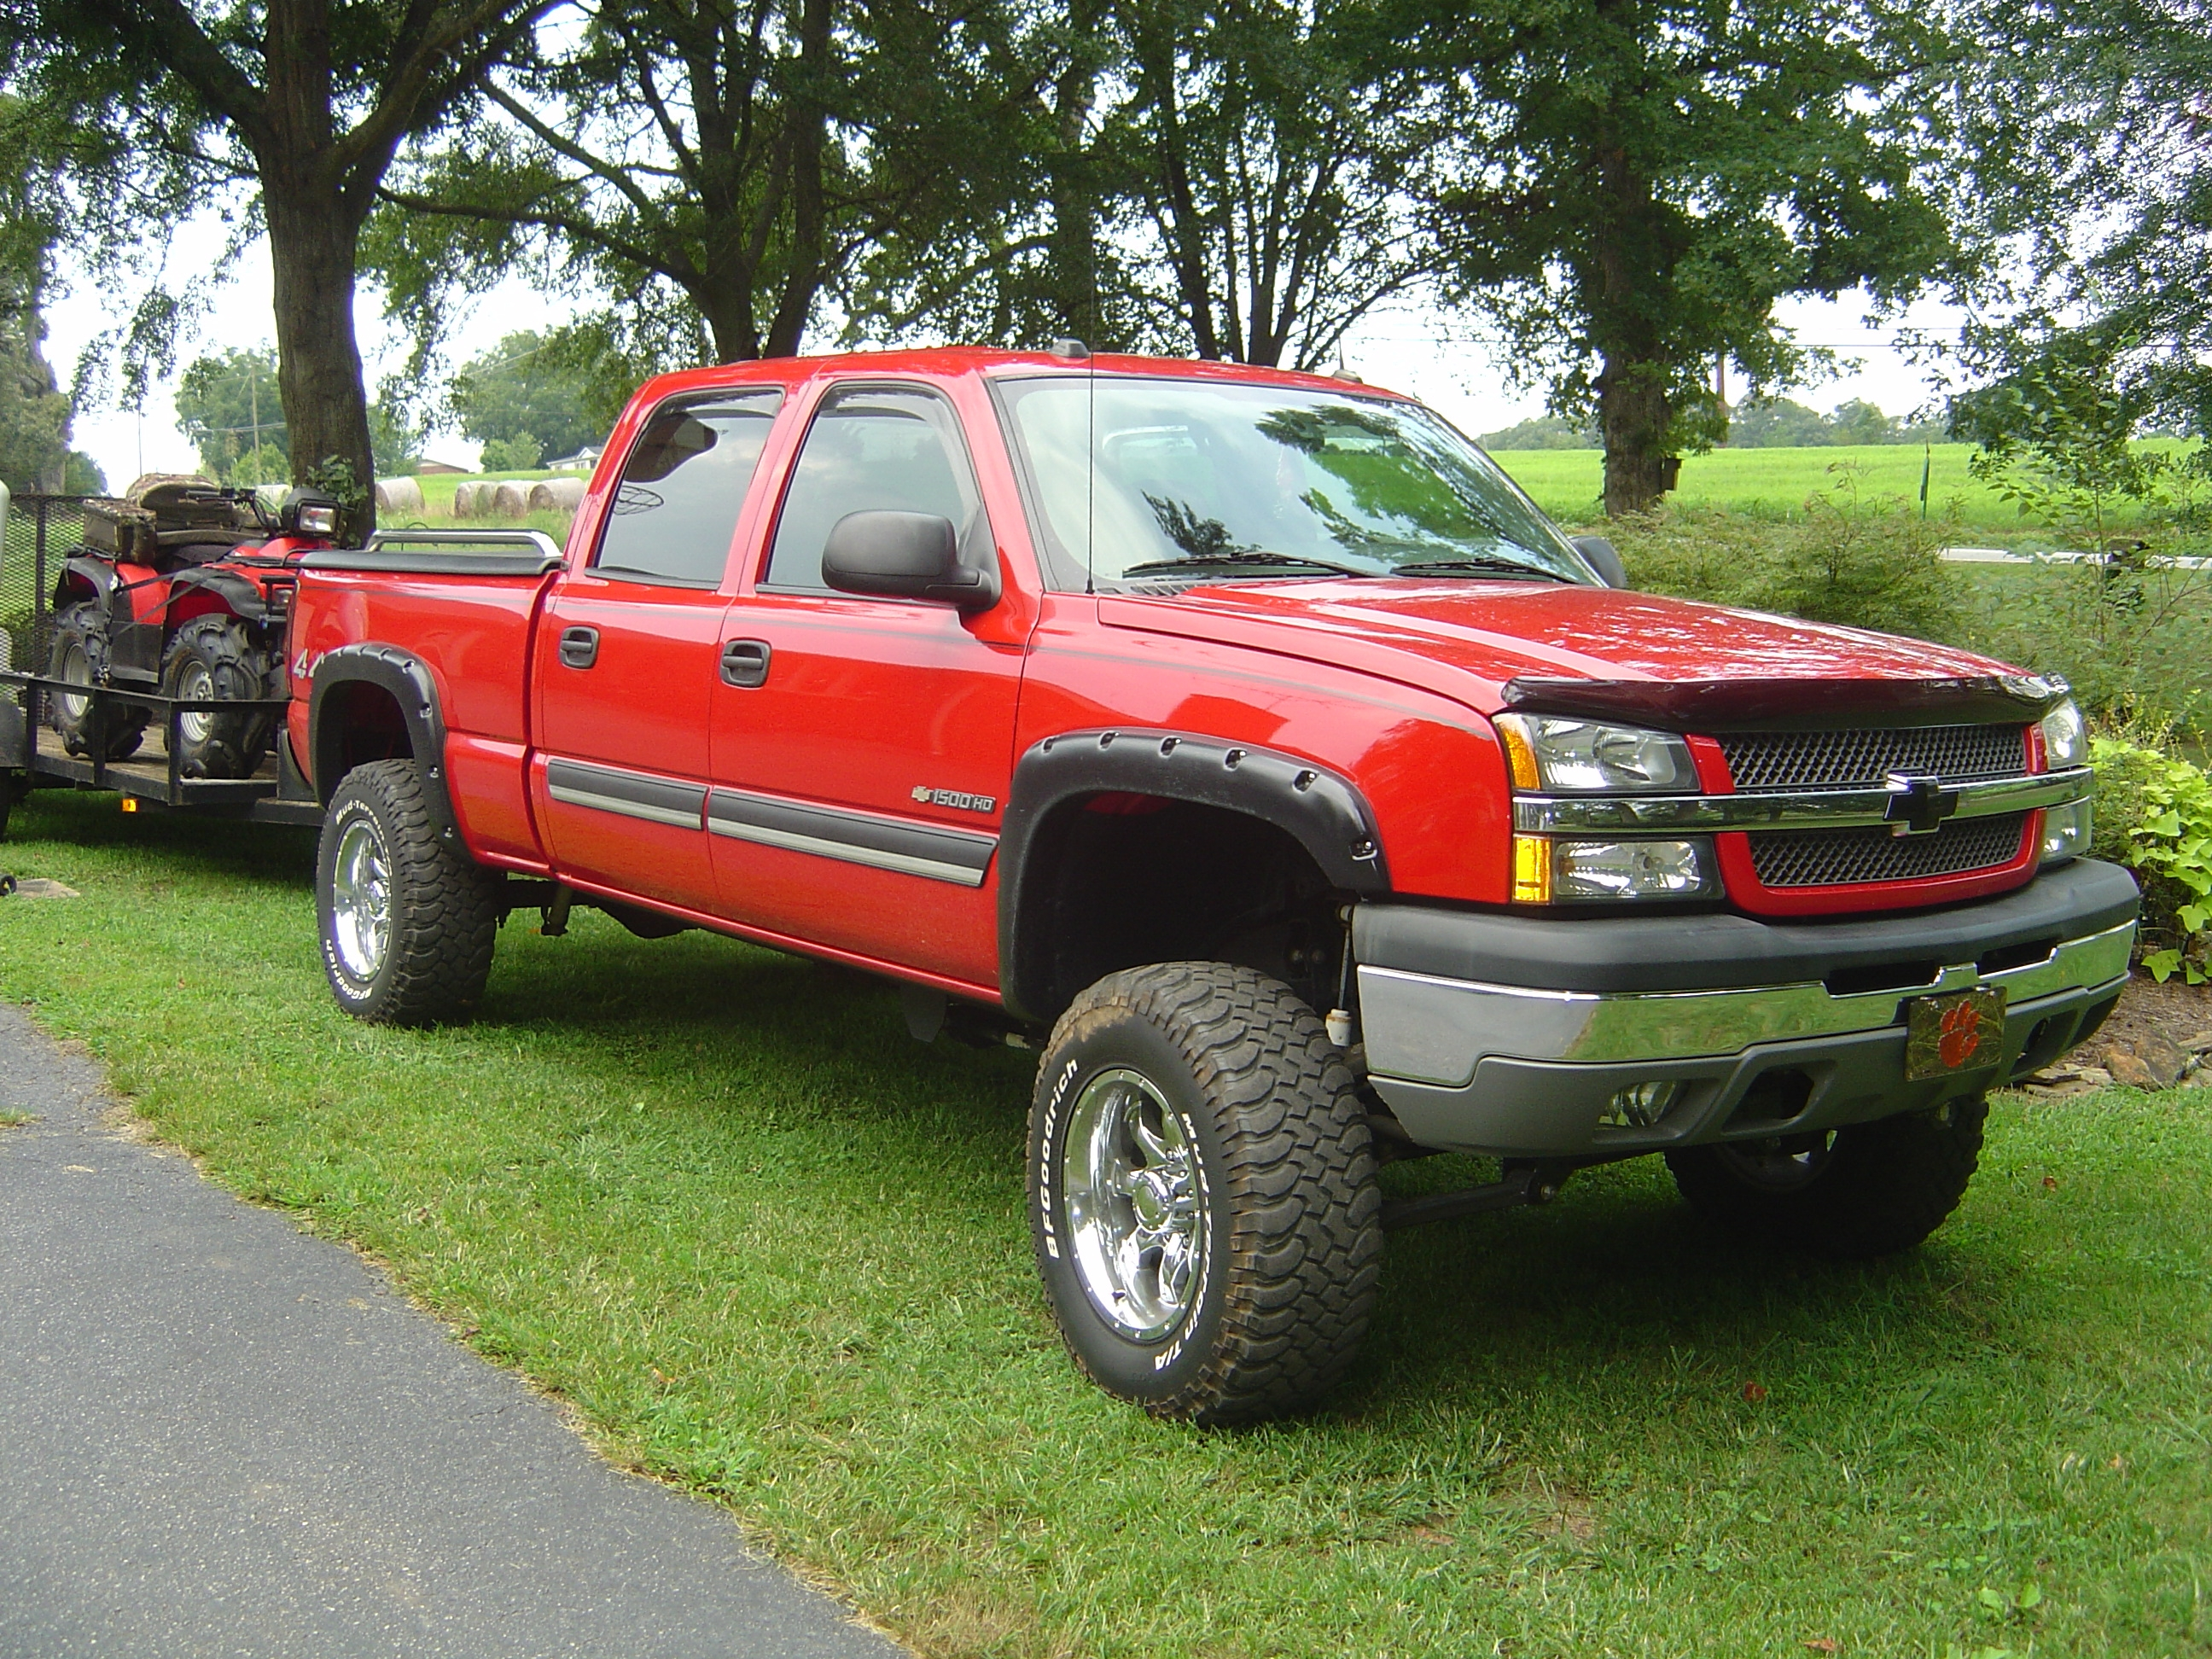 sportsman23 2005 chevrolet silverado classic 1500 hd crew cab specs photos modification info. Black Bedroom Furniture Sets. Home Design Ideas